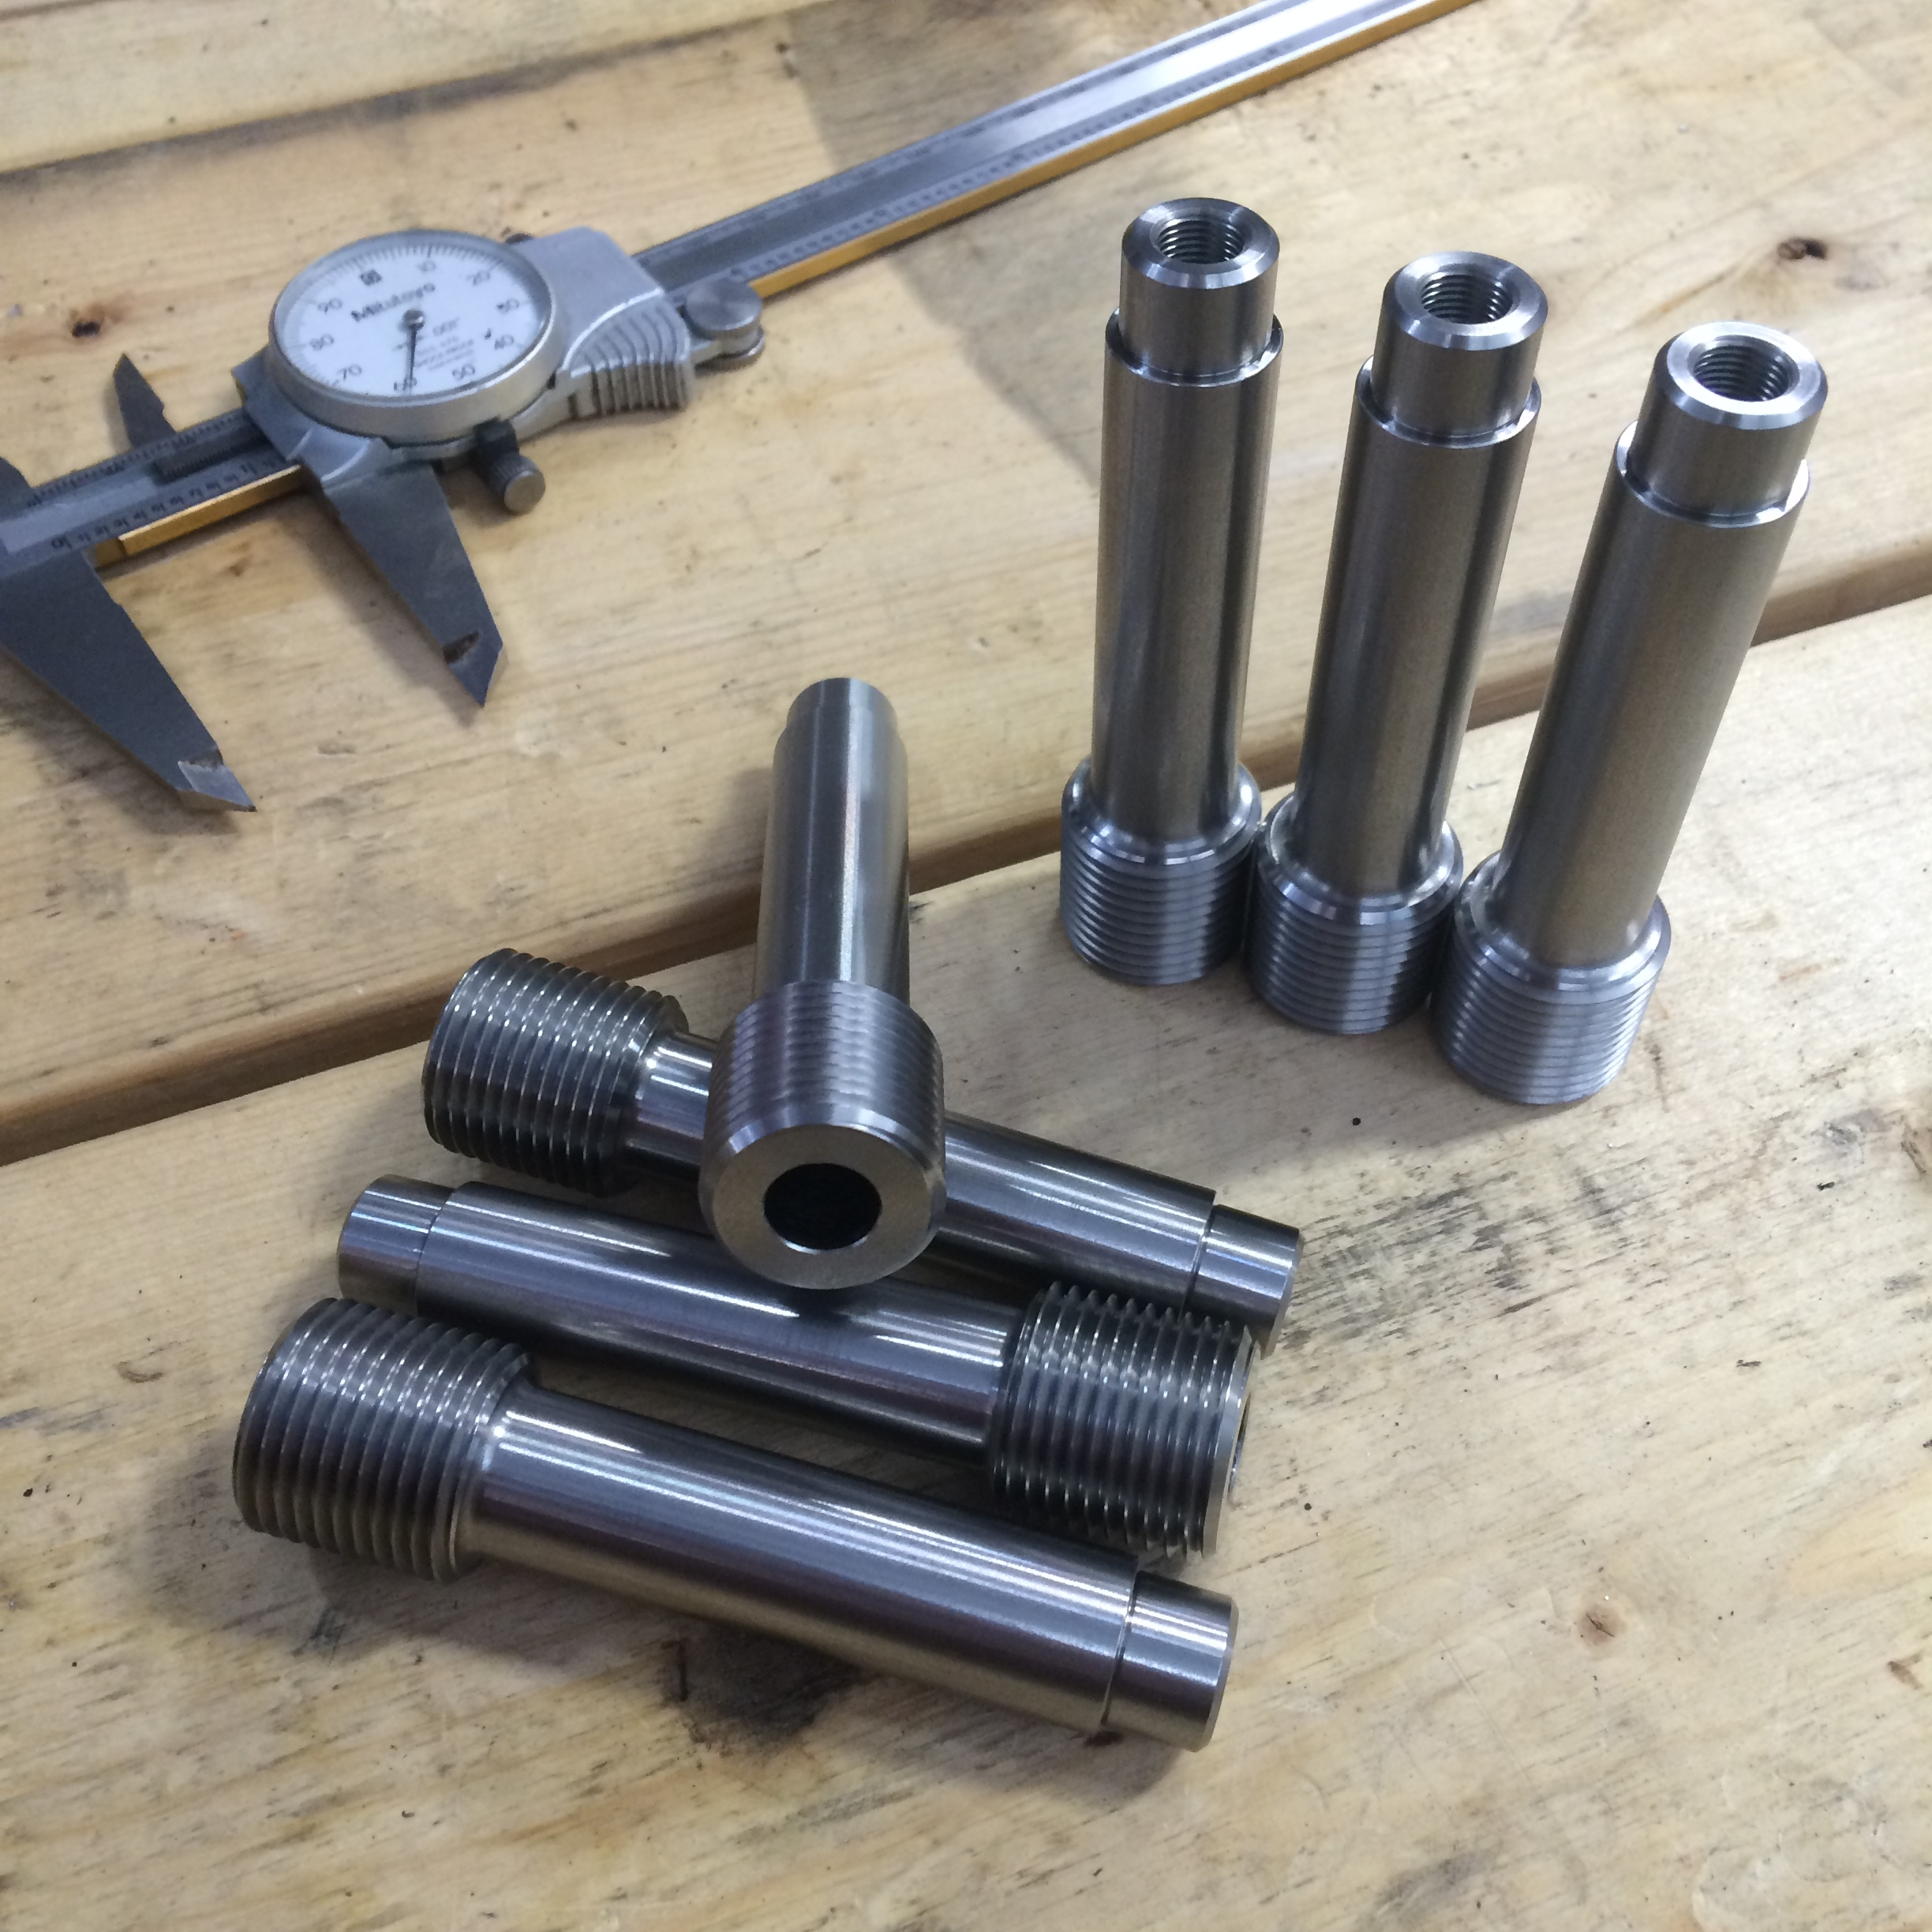 Fitz-Thors-Engineering_manufacturing_CNC-milling-machine-parts-calipers.JPG